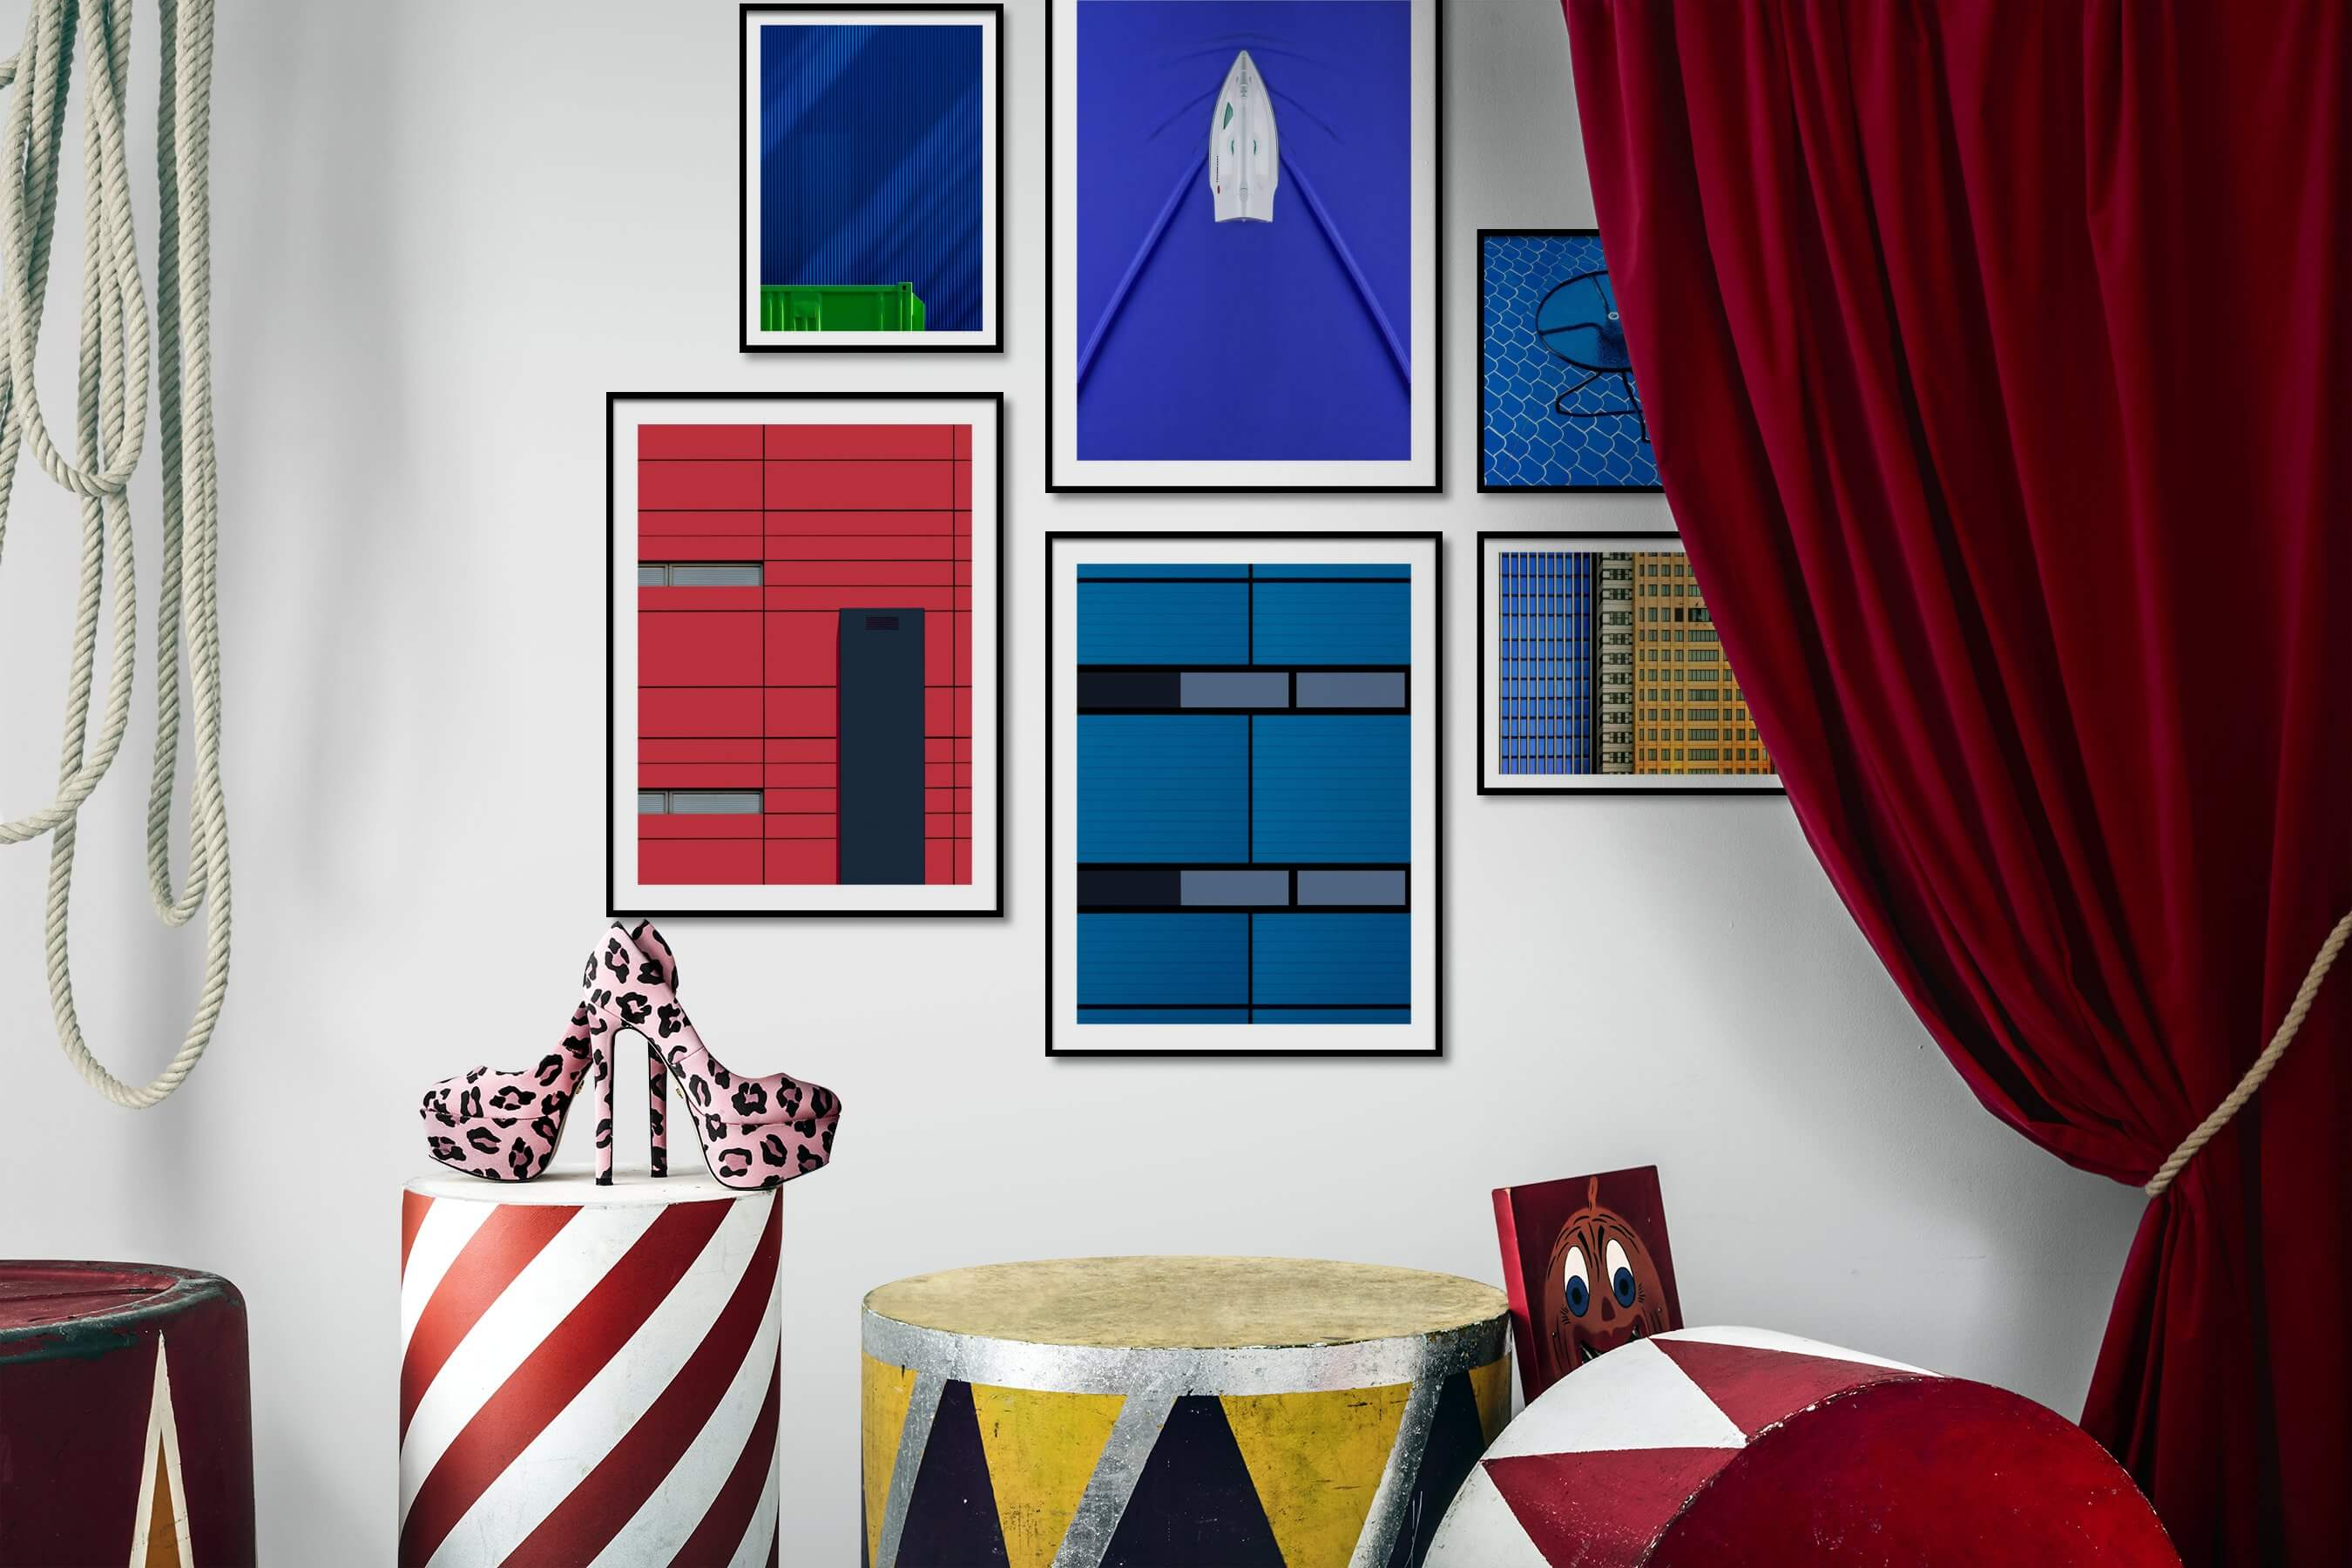 Gallery wall idea with six framed pictures arranged on a wall depicting For the Minimalist, For the Moderate, Colorful, For the Maximalist, and City Life